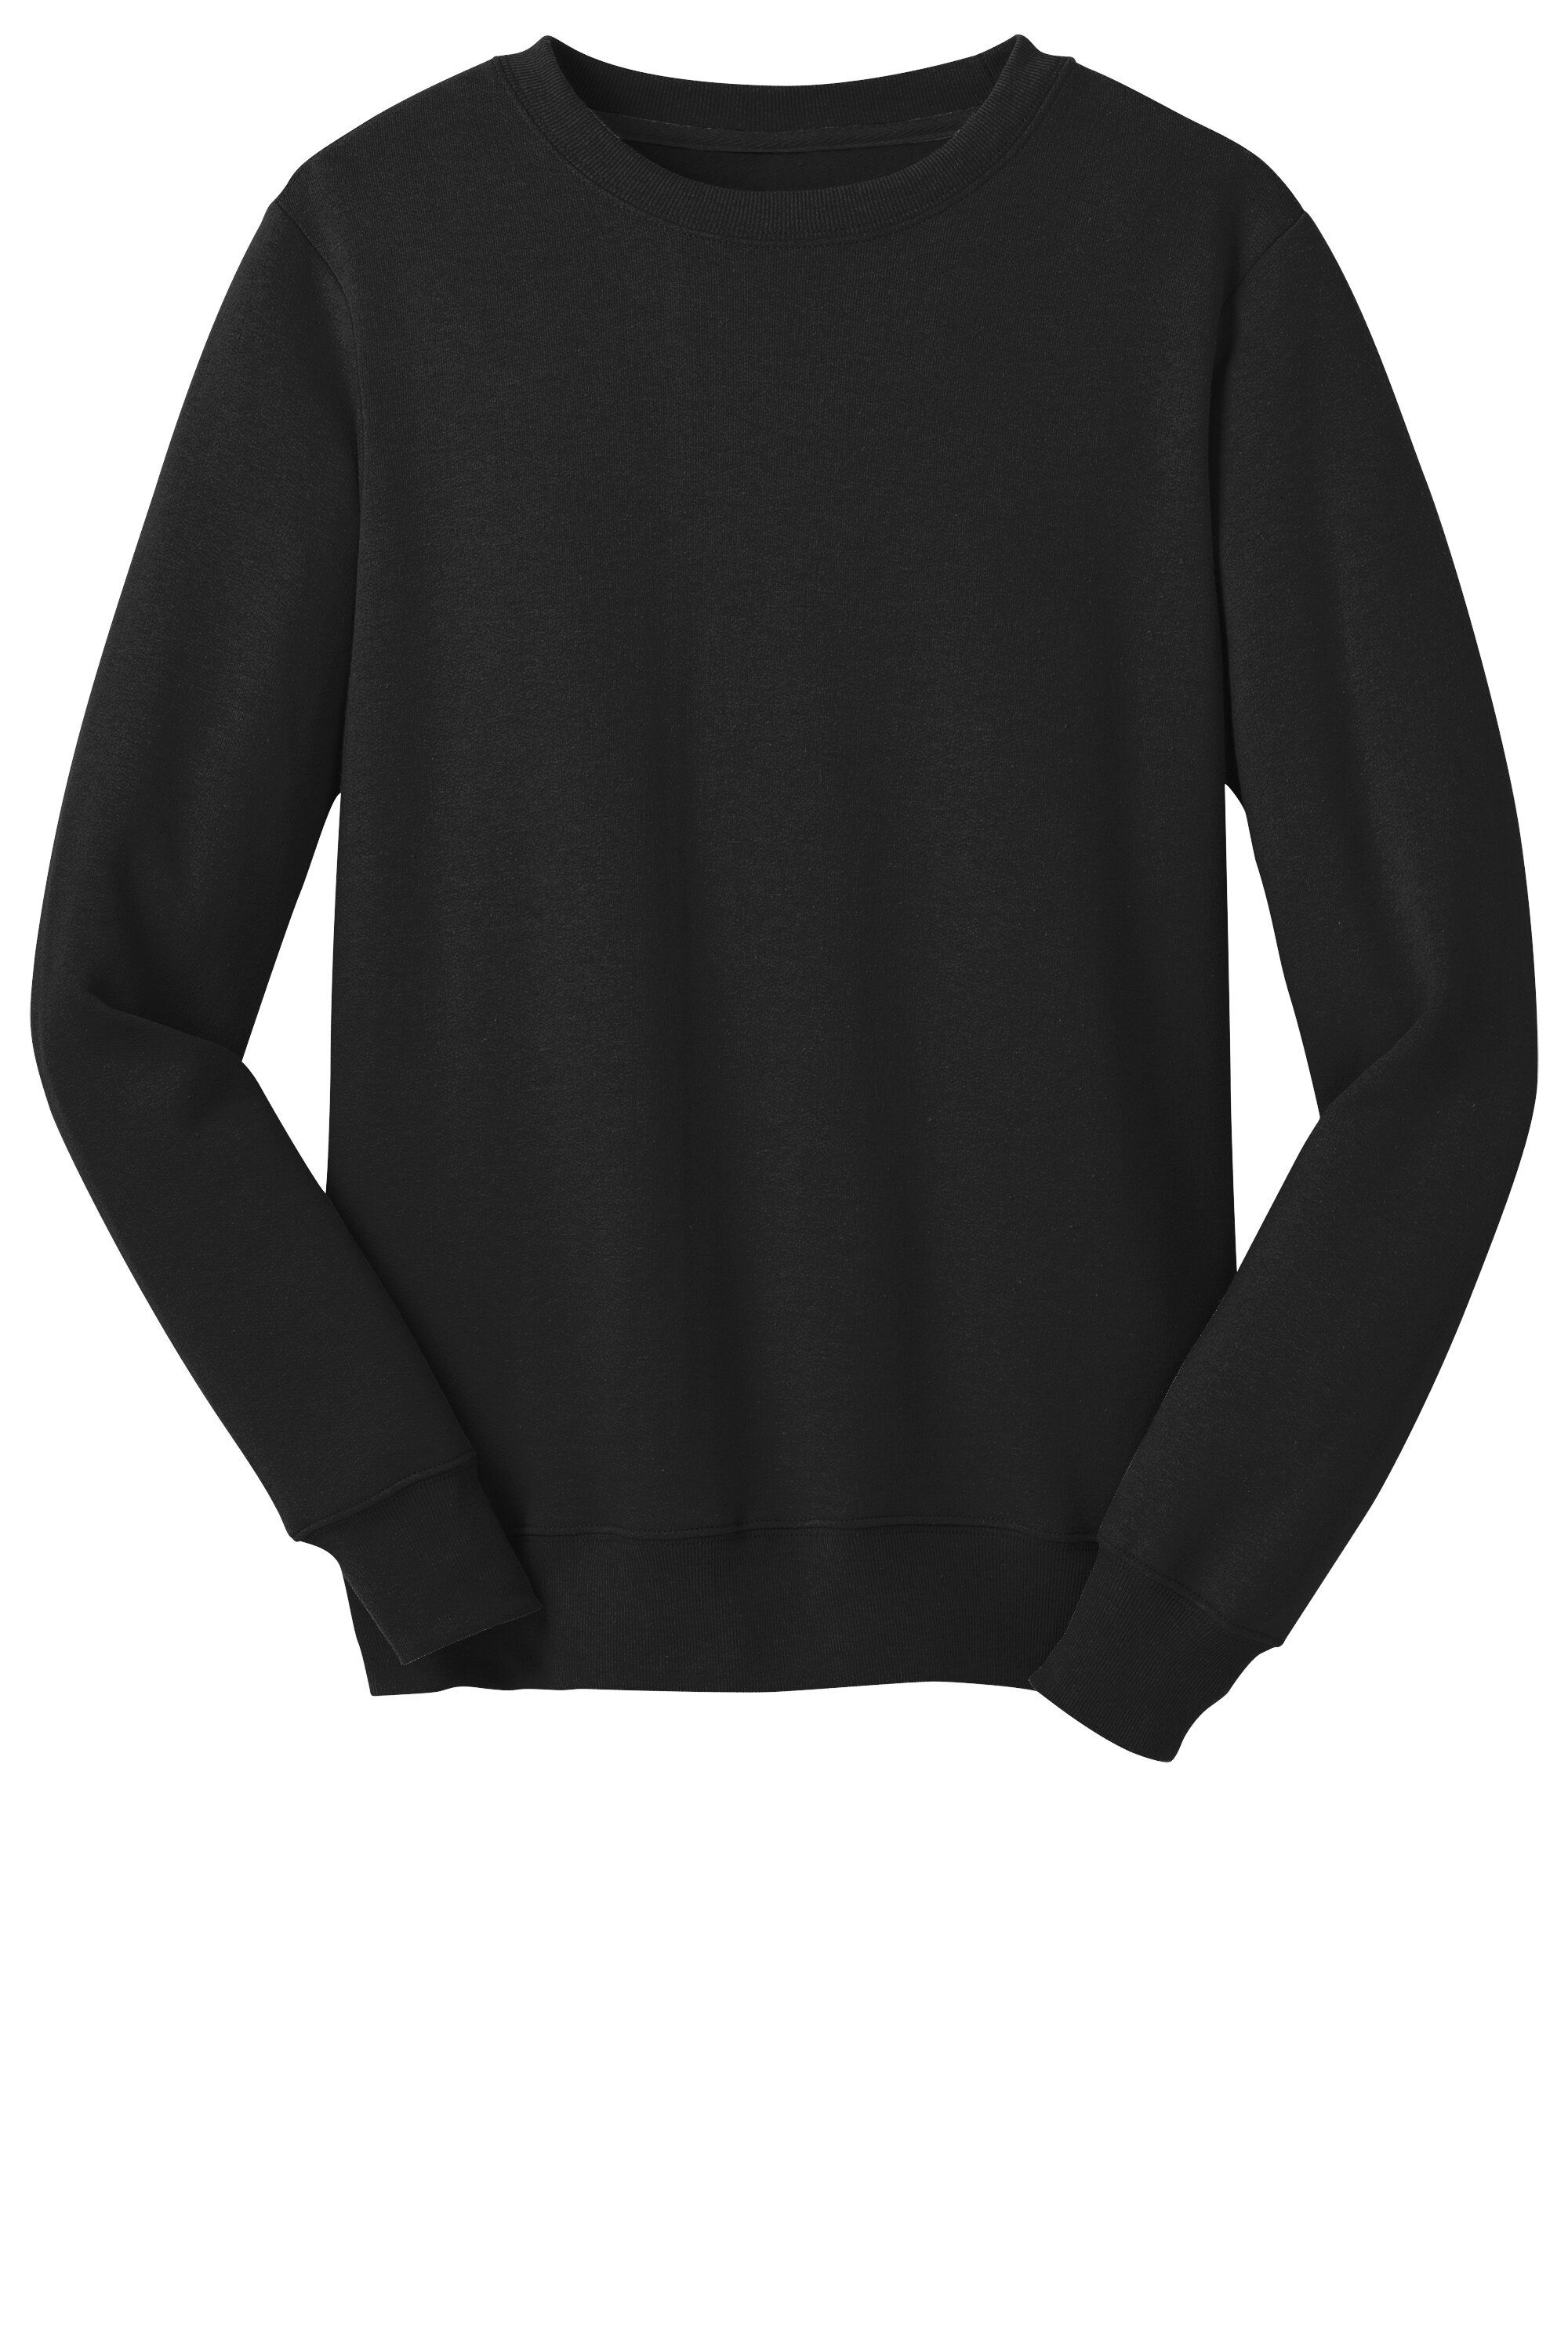 black crew neck sweater women's - Google Search | winter 2015 ...